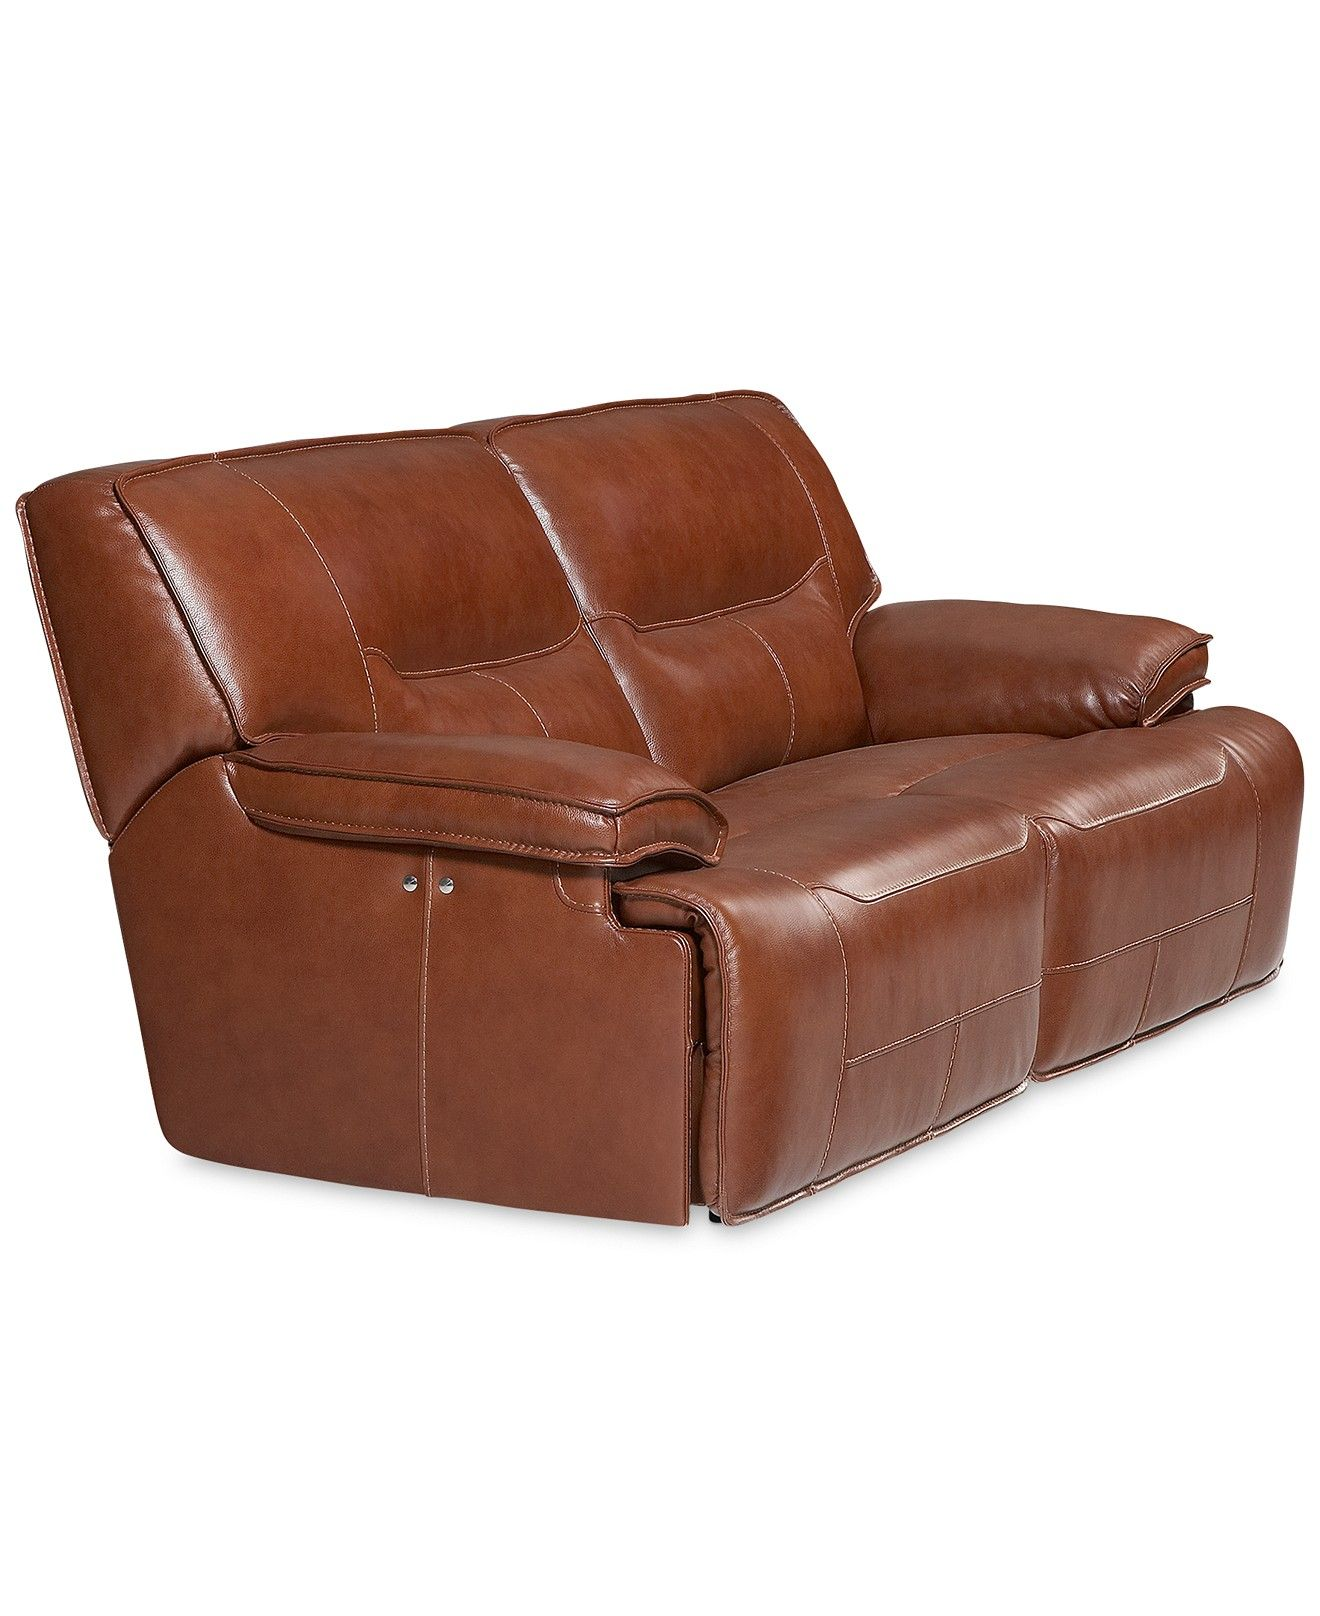 Best Beckett Leather 2 Piece Sectional Sofa With 2 Power 400 x 300